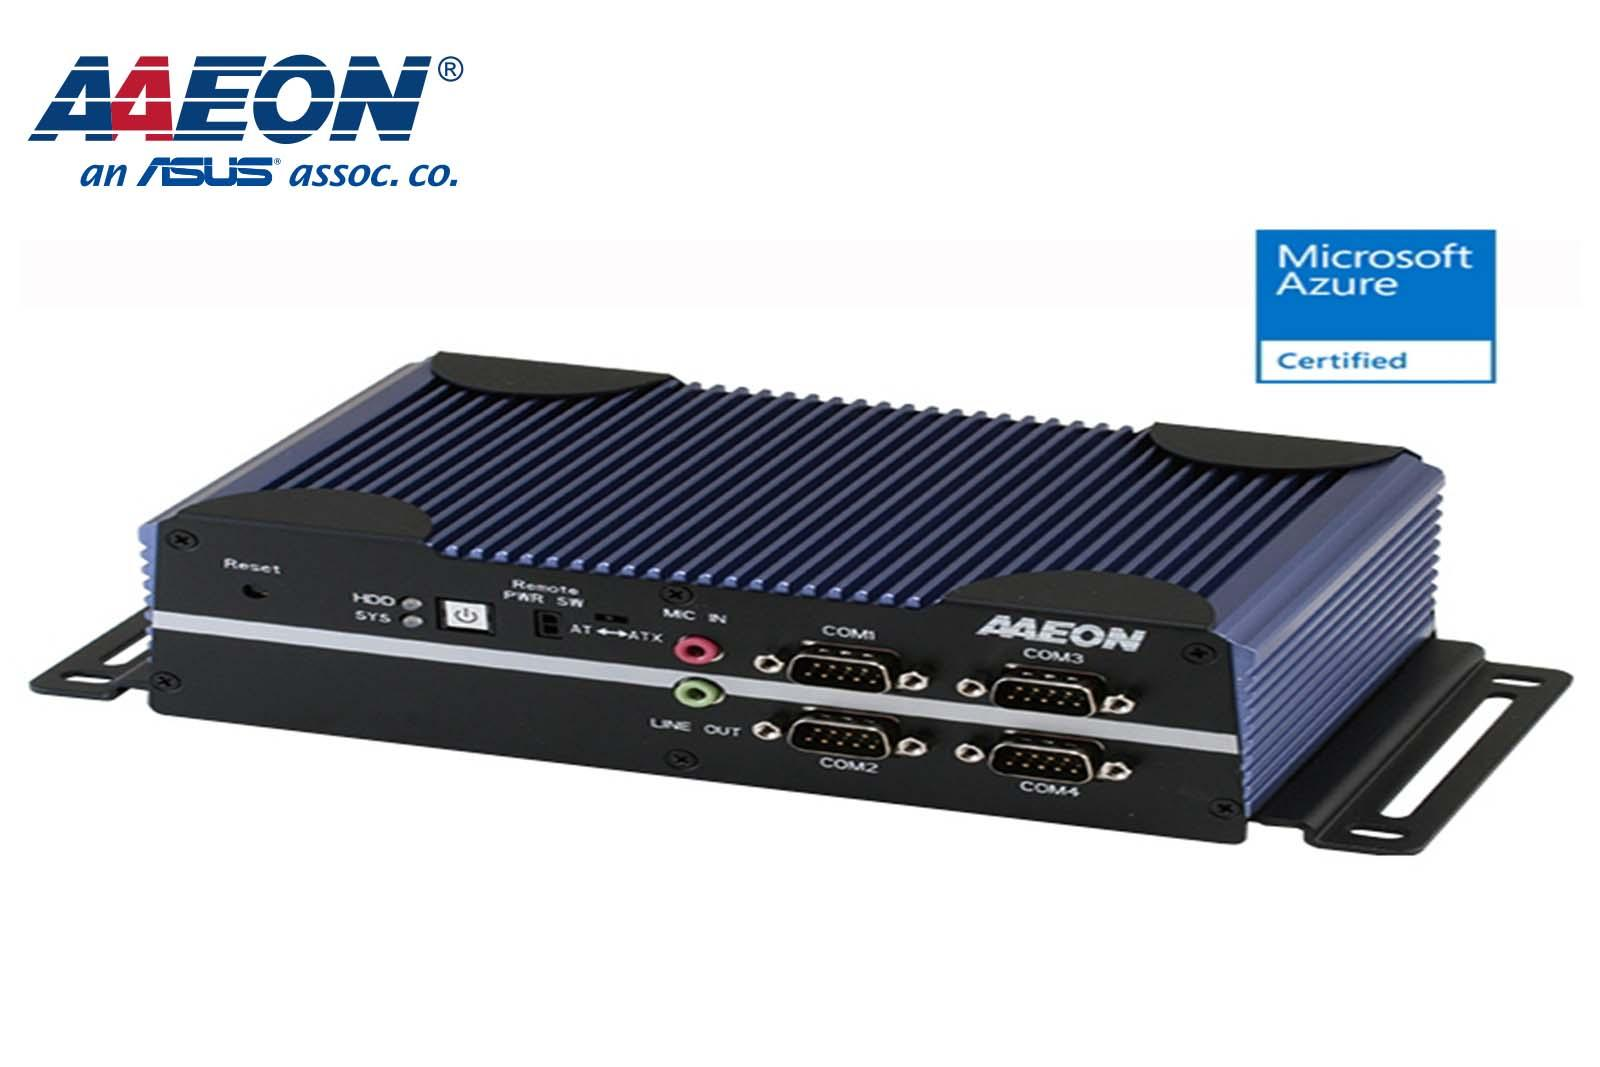 BOXER-6616 Fanless Embedded Box PC with Intel® Celeron® Processor N3350/N4200